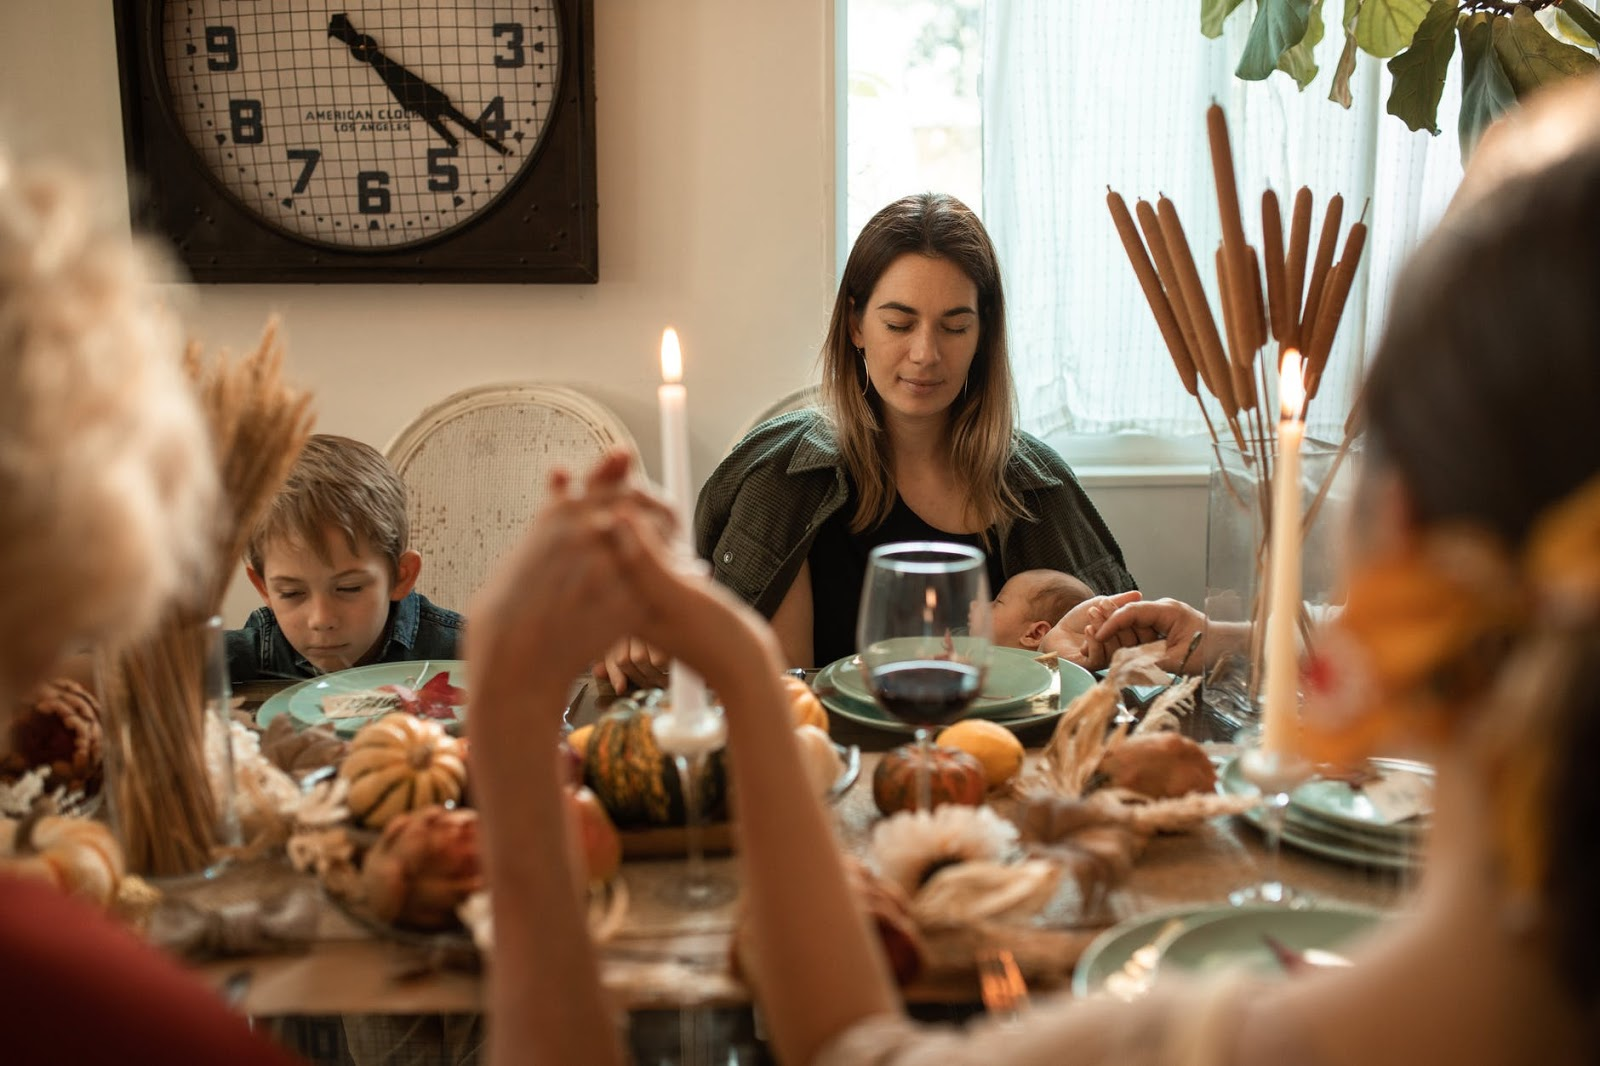 Read Bible verses perfect for celebrating Thanksgiving and showing gratitude to God with pray.com